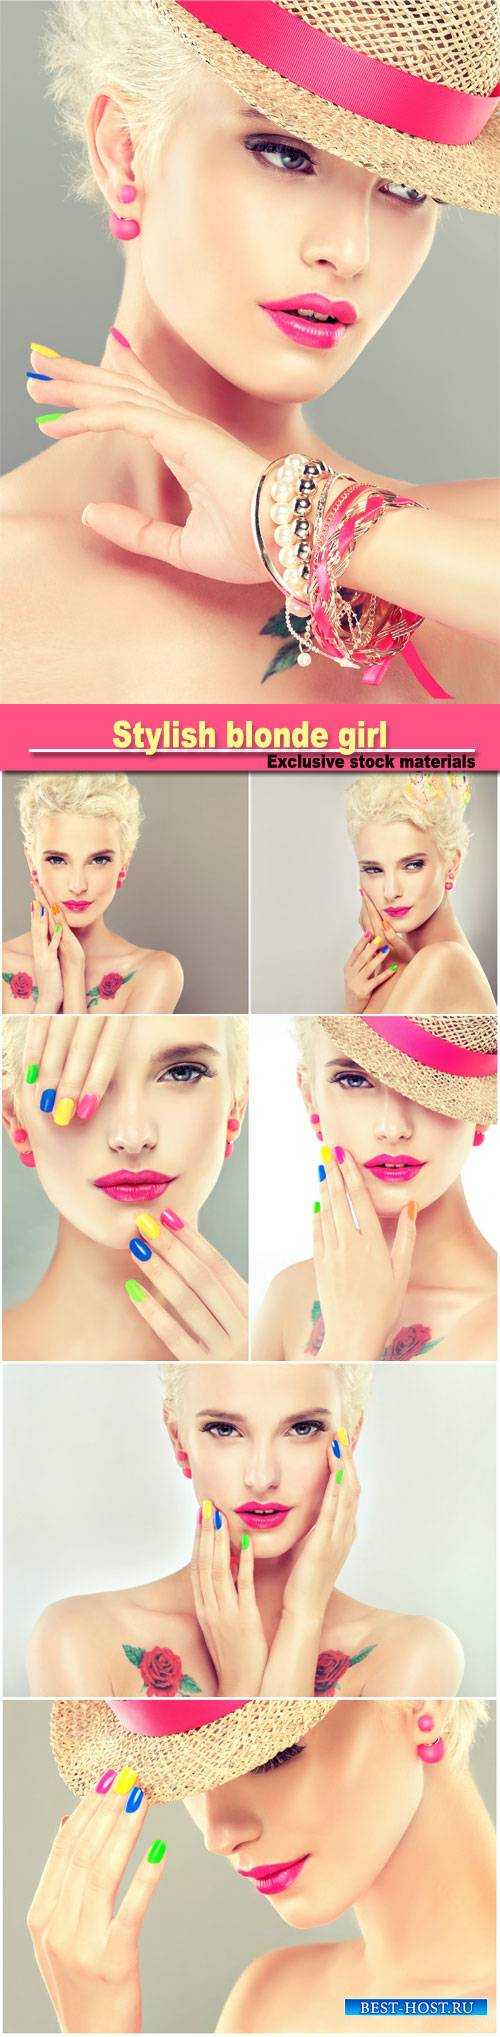 Stylish blonde girl with bright makeup and colorful nail